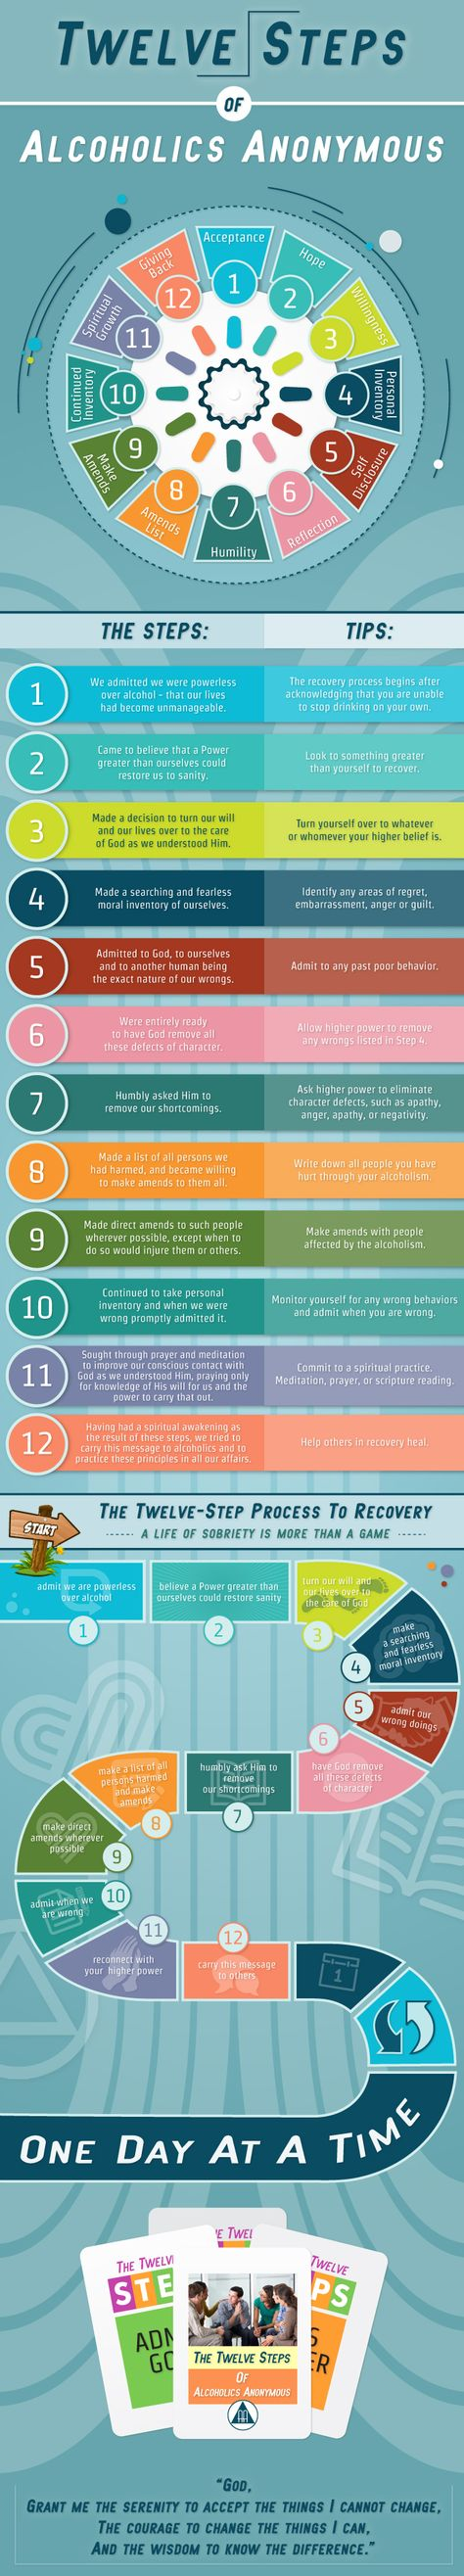 Twelve Steps Of Alcoholics Anonymous Infographic